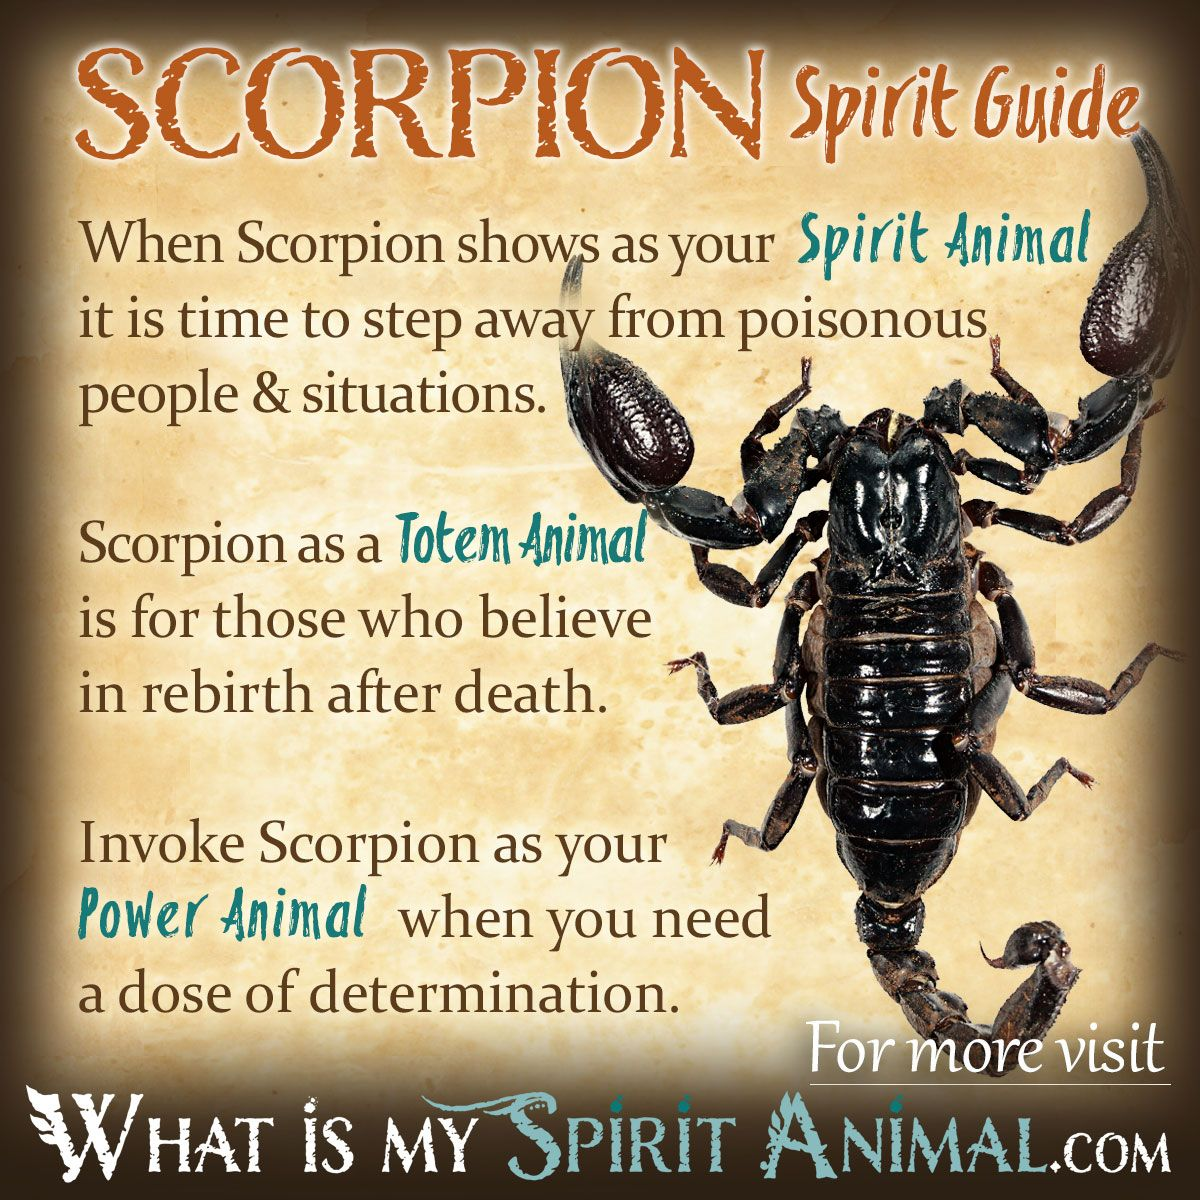 who is my spirit guide